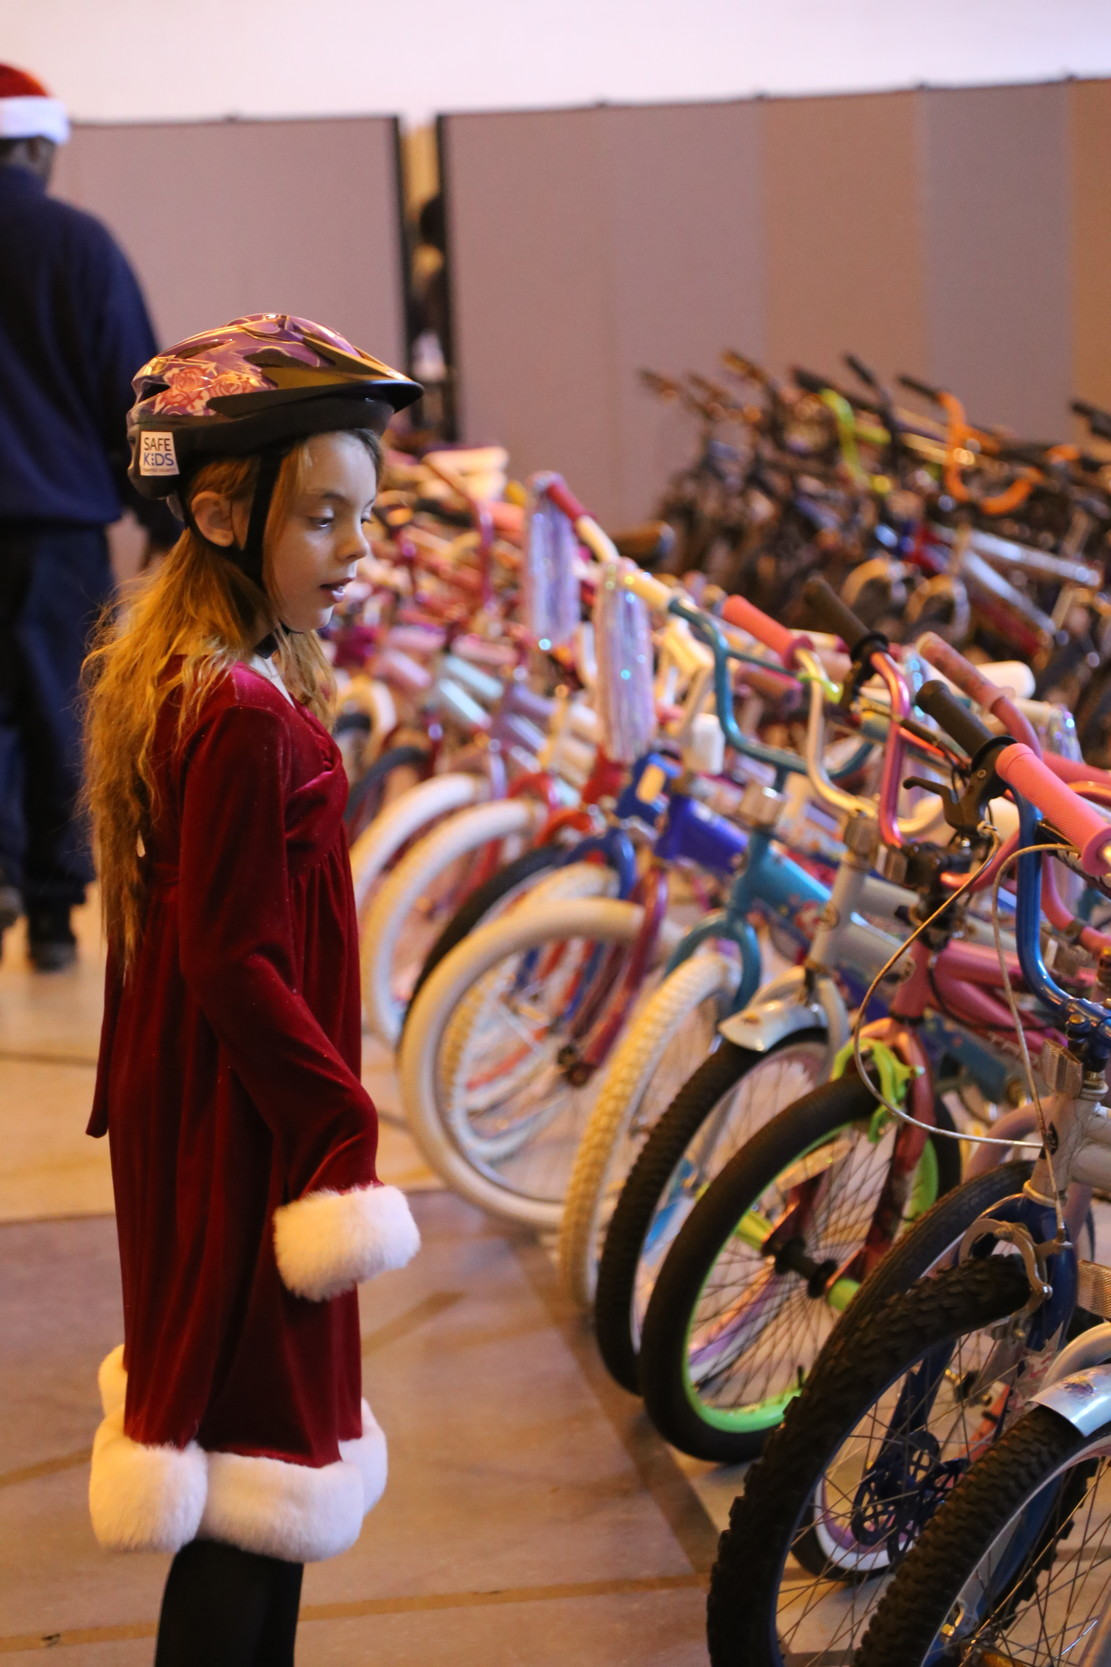 A child selected for Cycles for Christmas searches for the perfect bike.